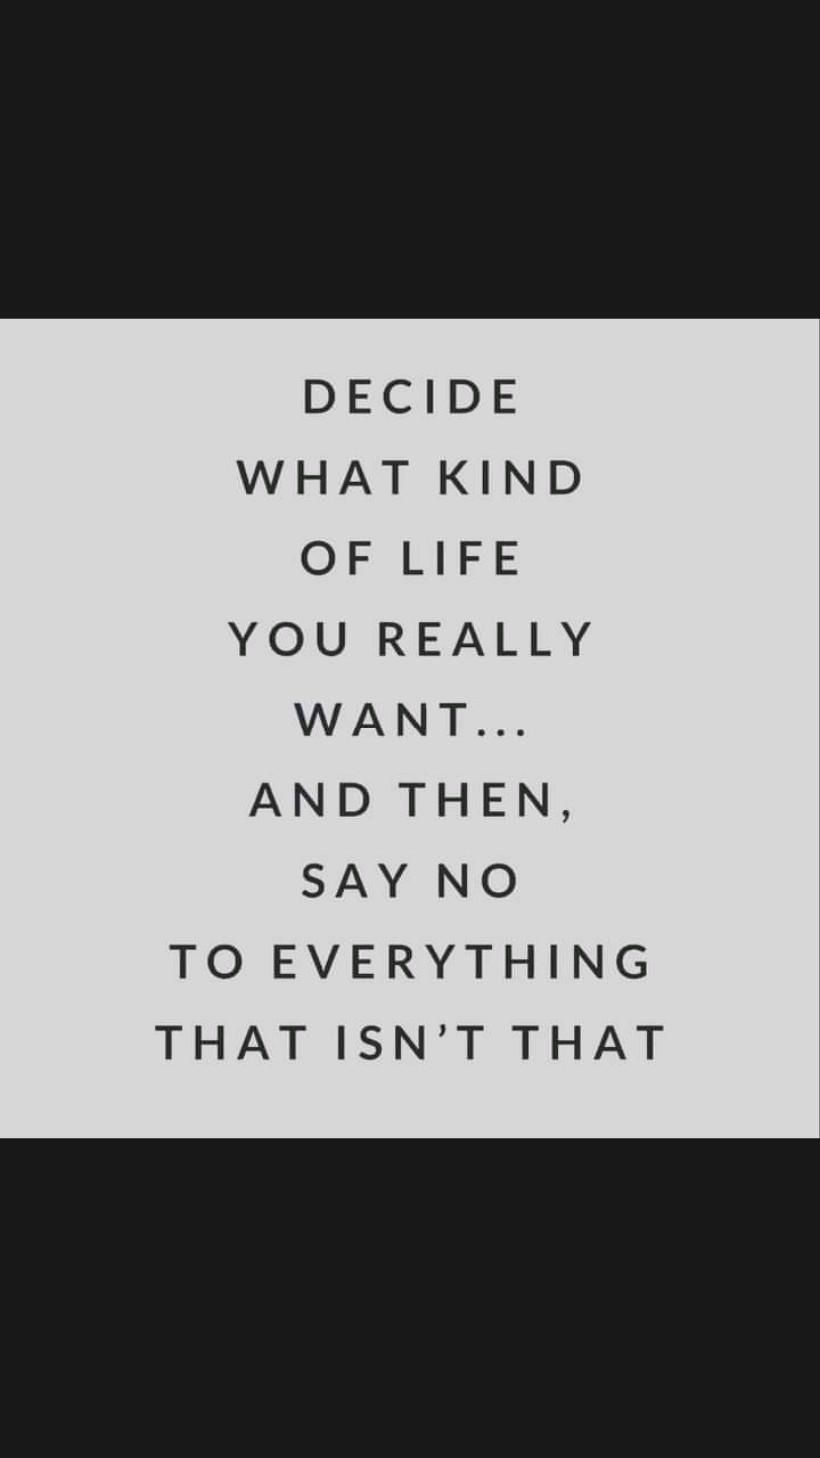 Decide what kind of life you really want..